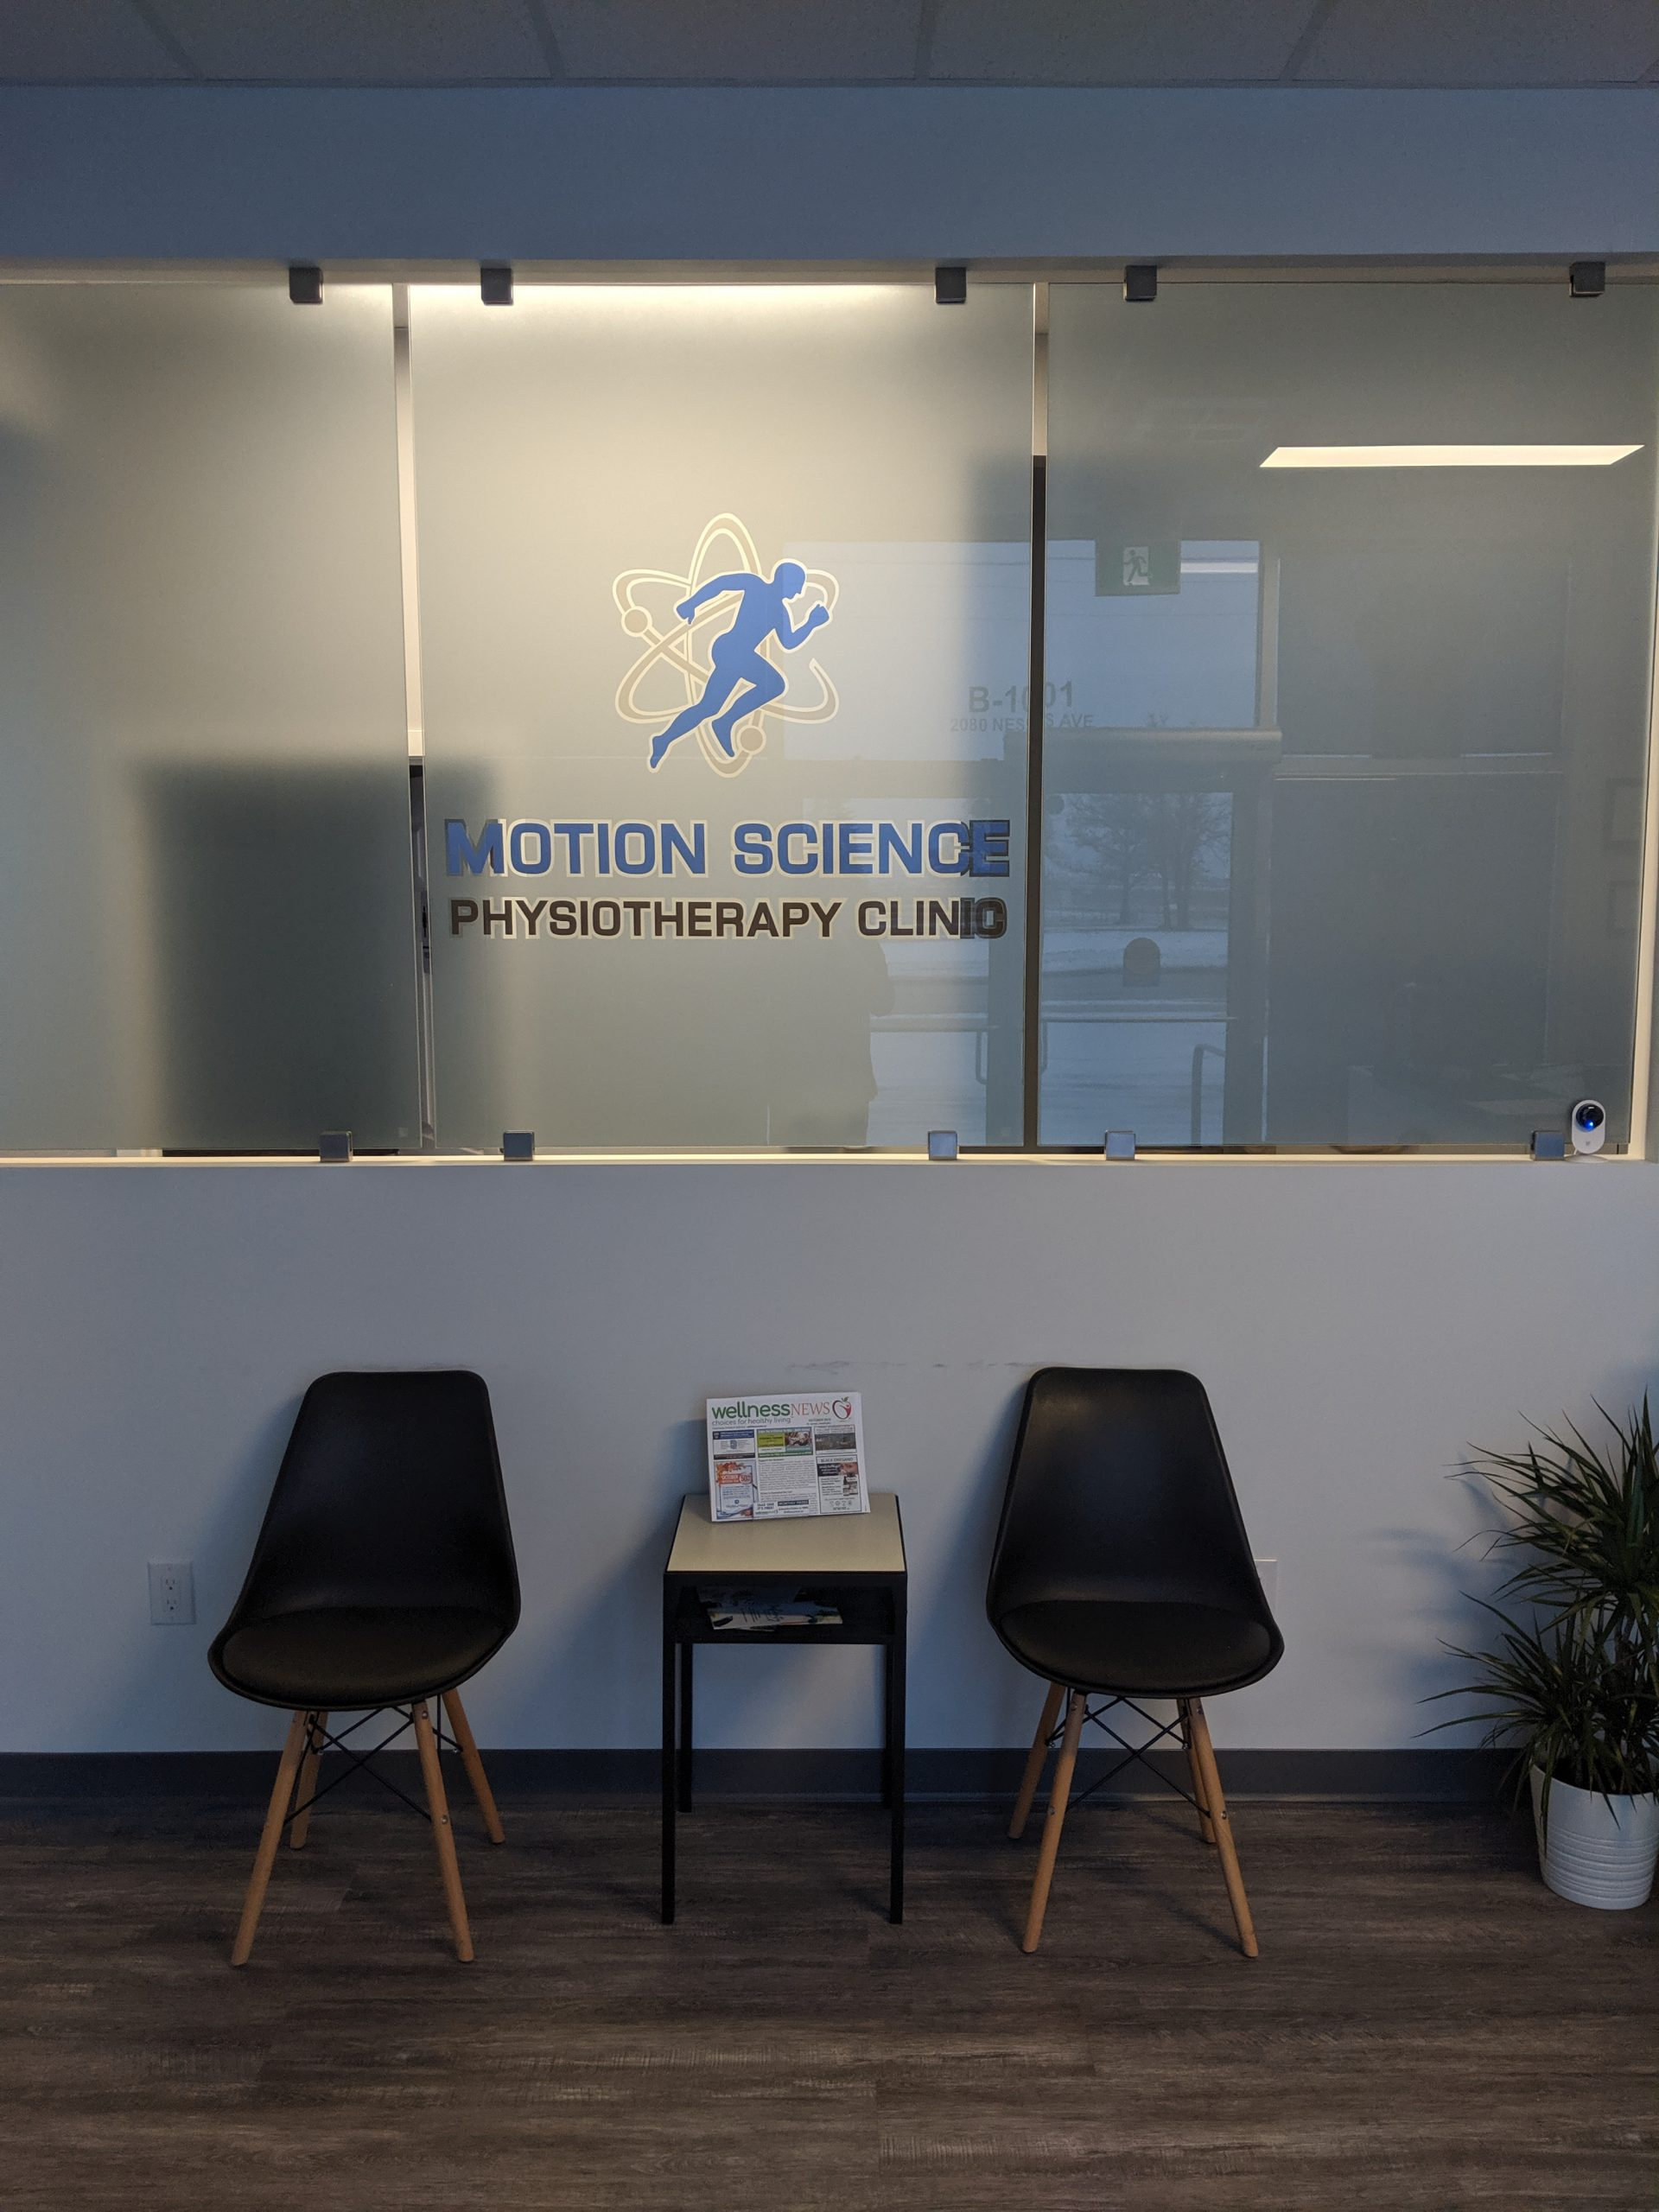 Motion Science Physiotherapy Clinic